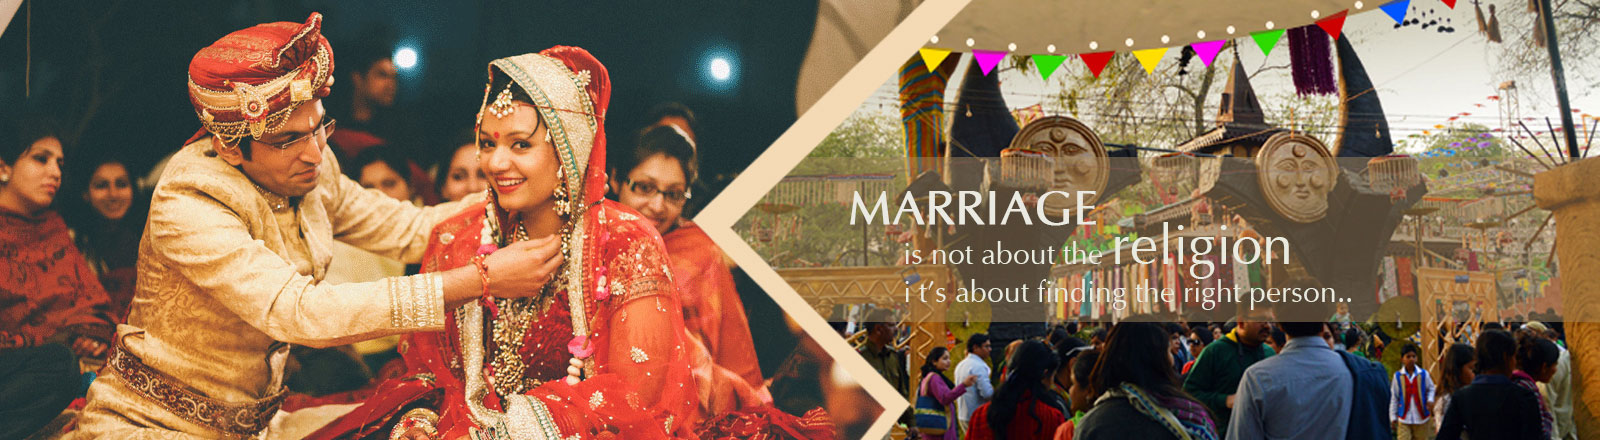 Best Matrimonial Services in Haryana